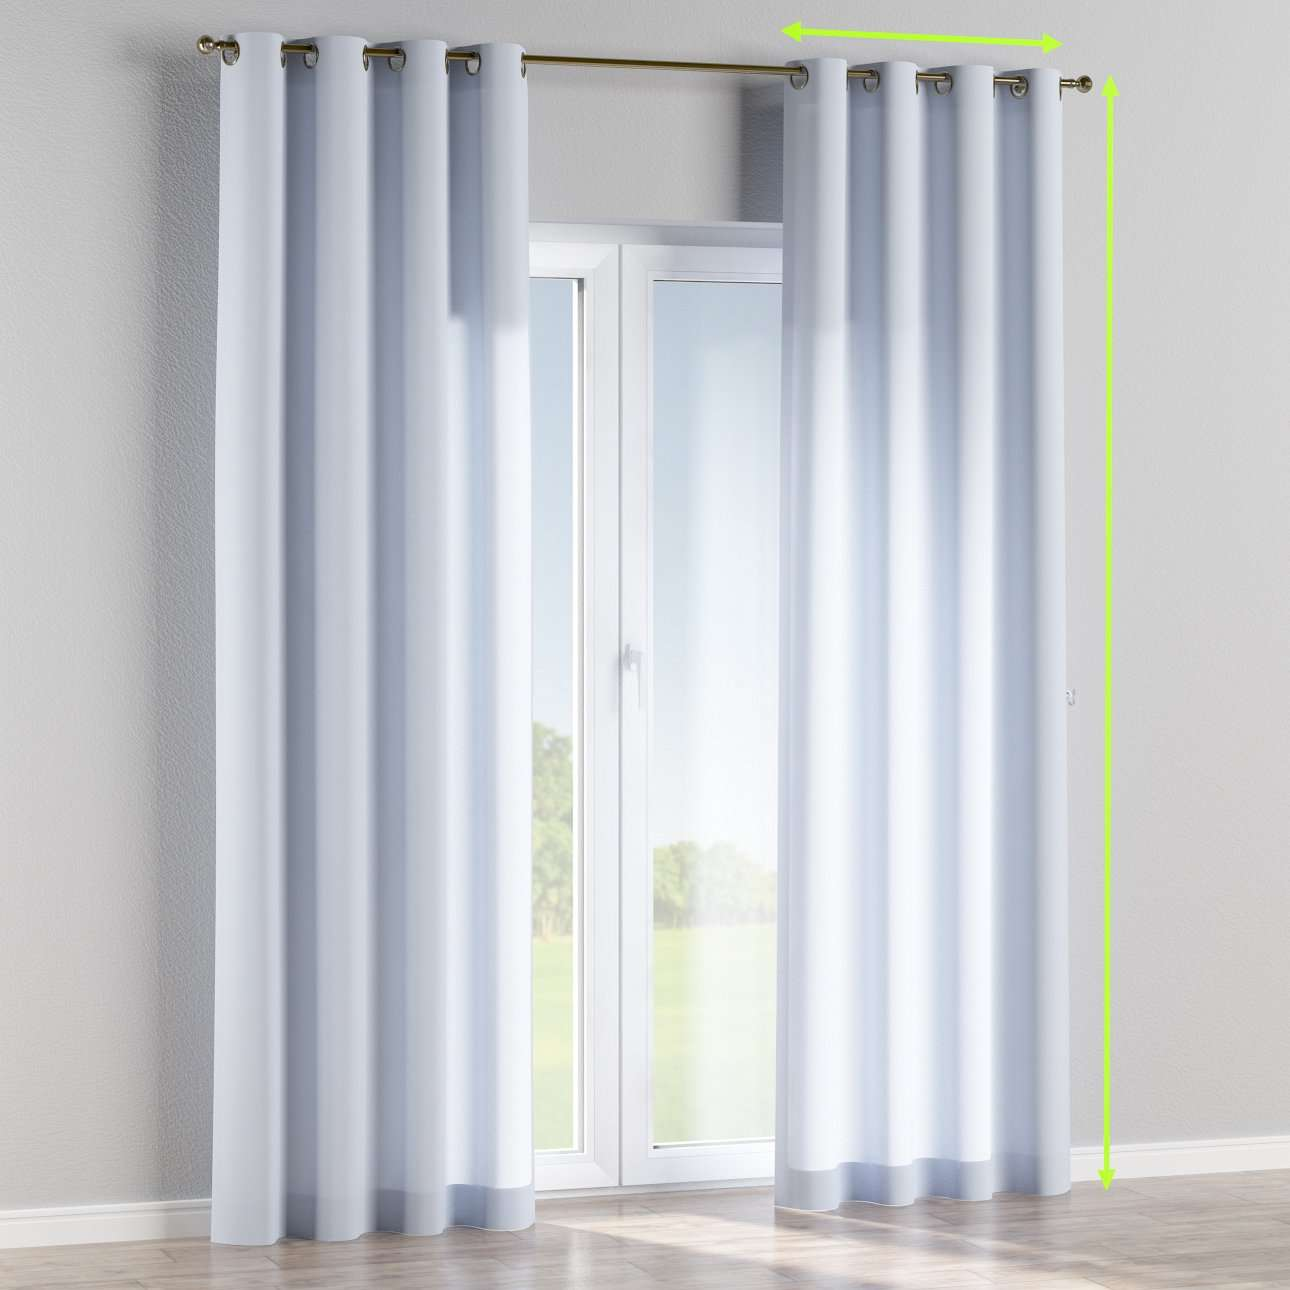 Eyelet lined curtains in collection Loneta , fabric: 133-35